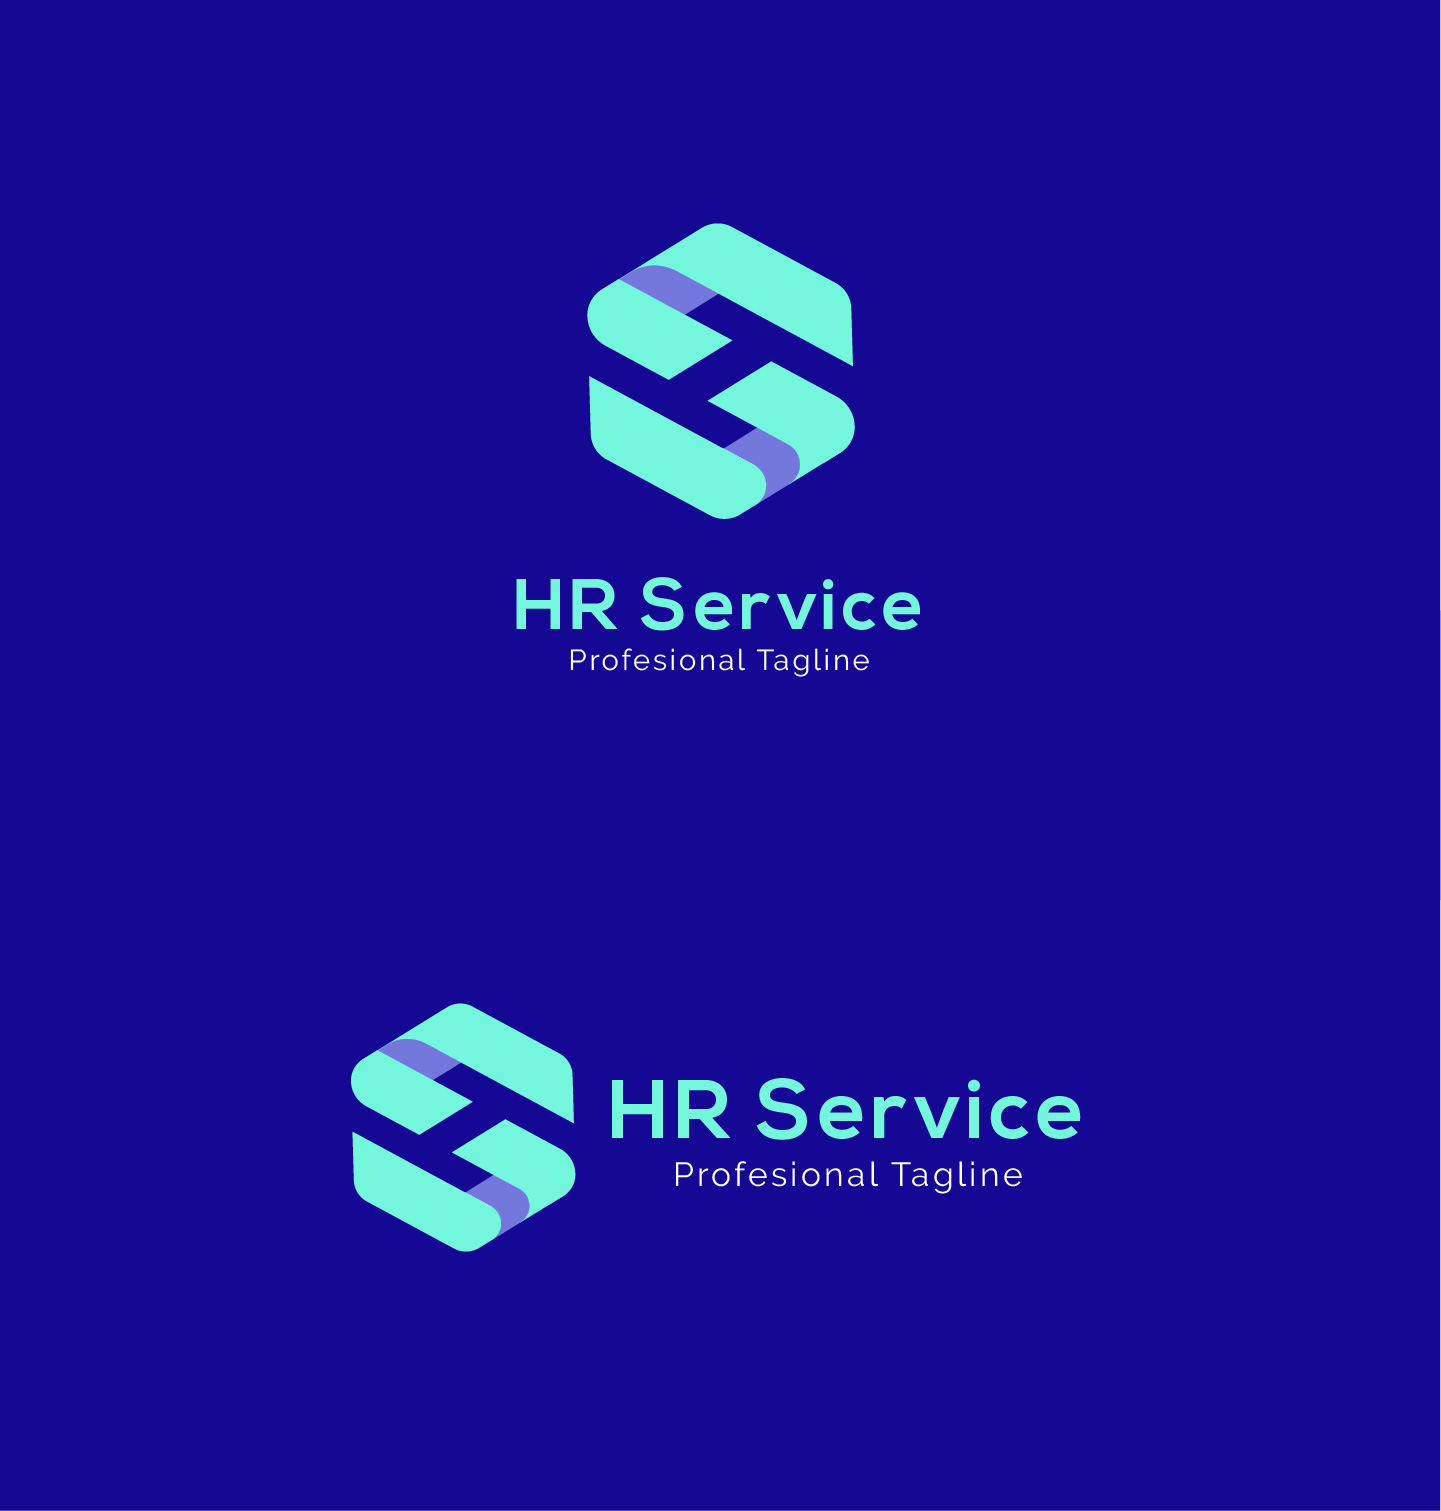 HR Service - H S Letter Logo example image 7